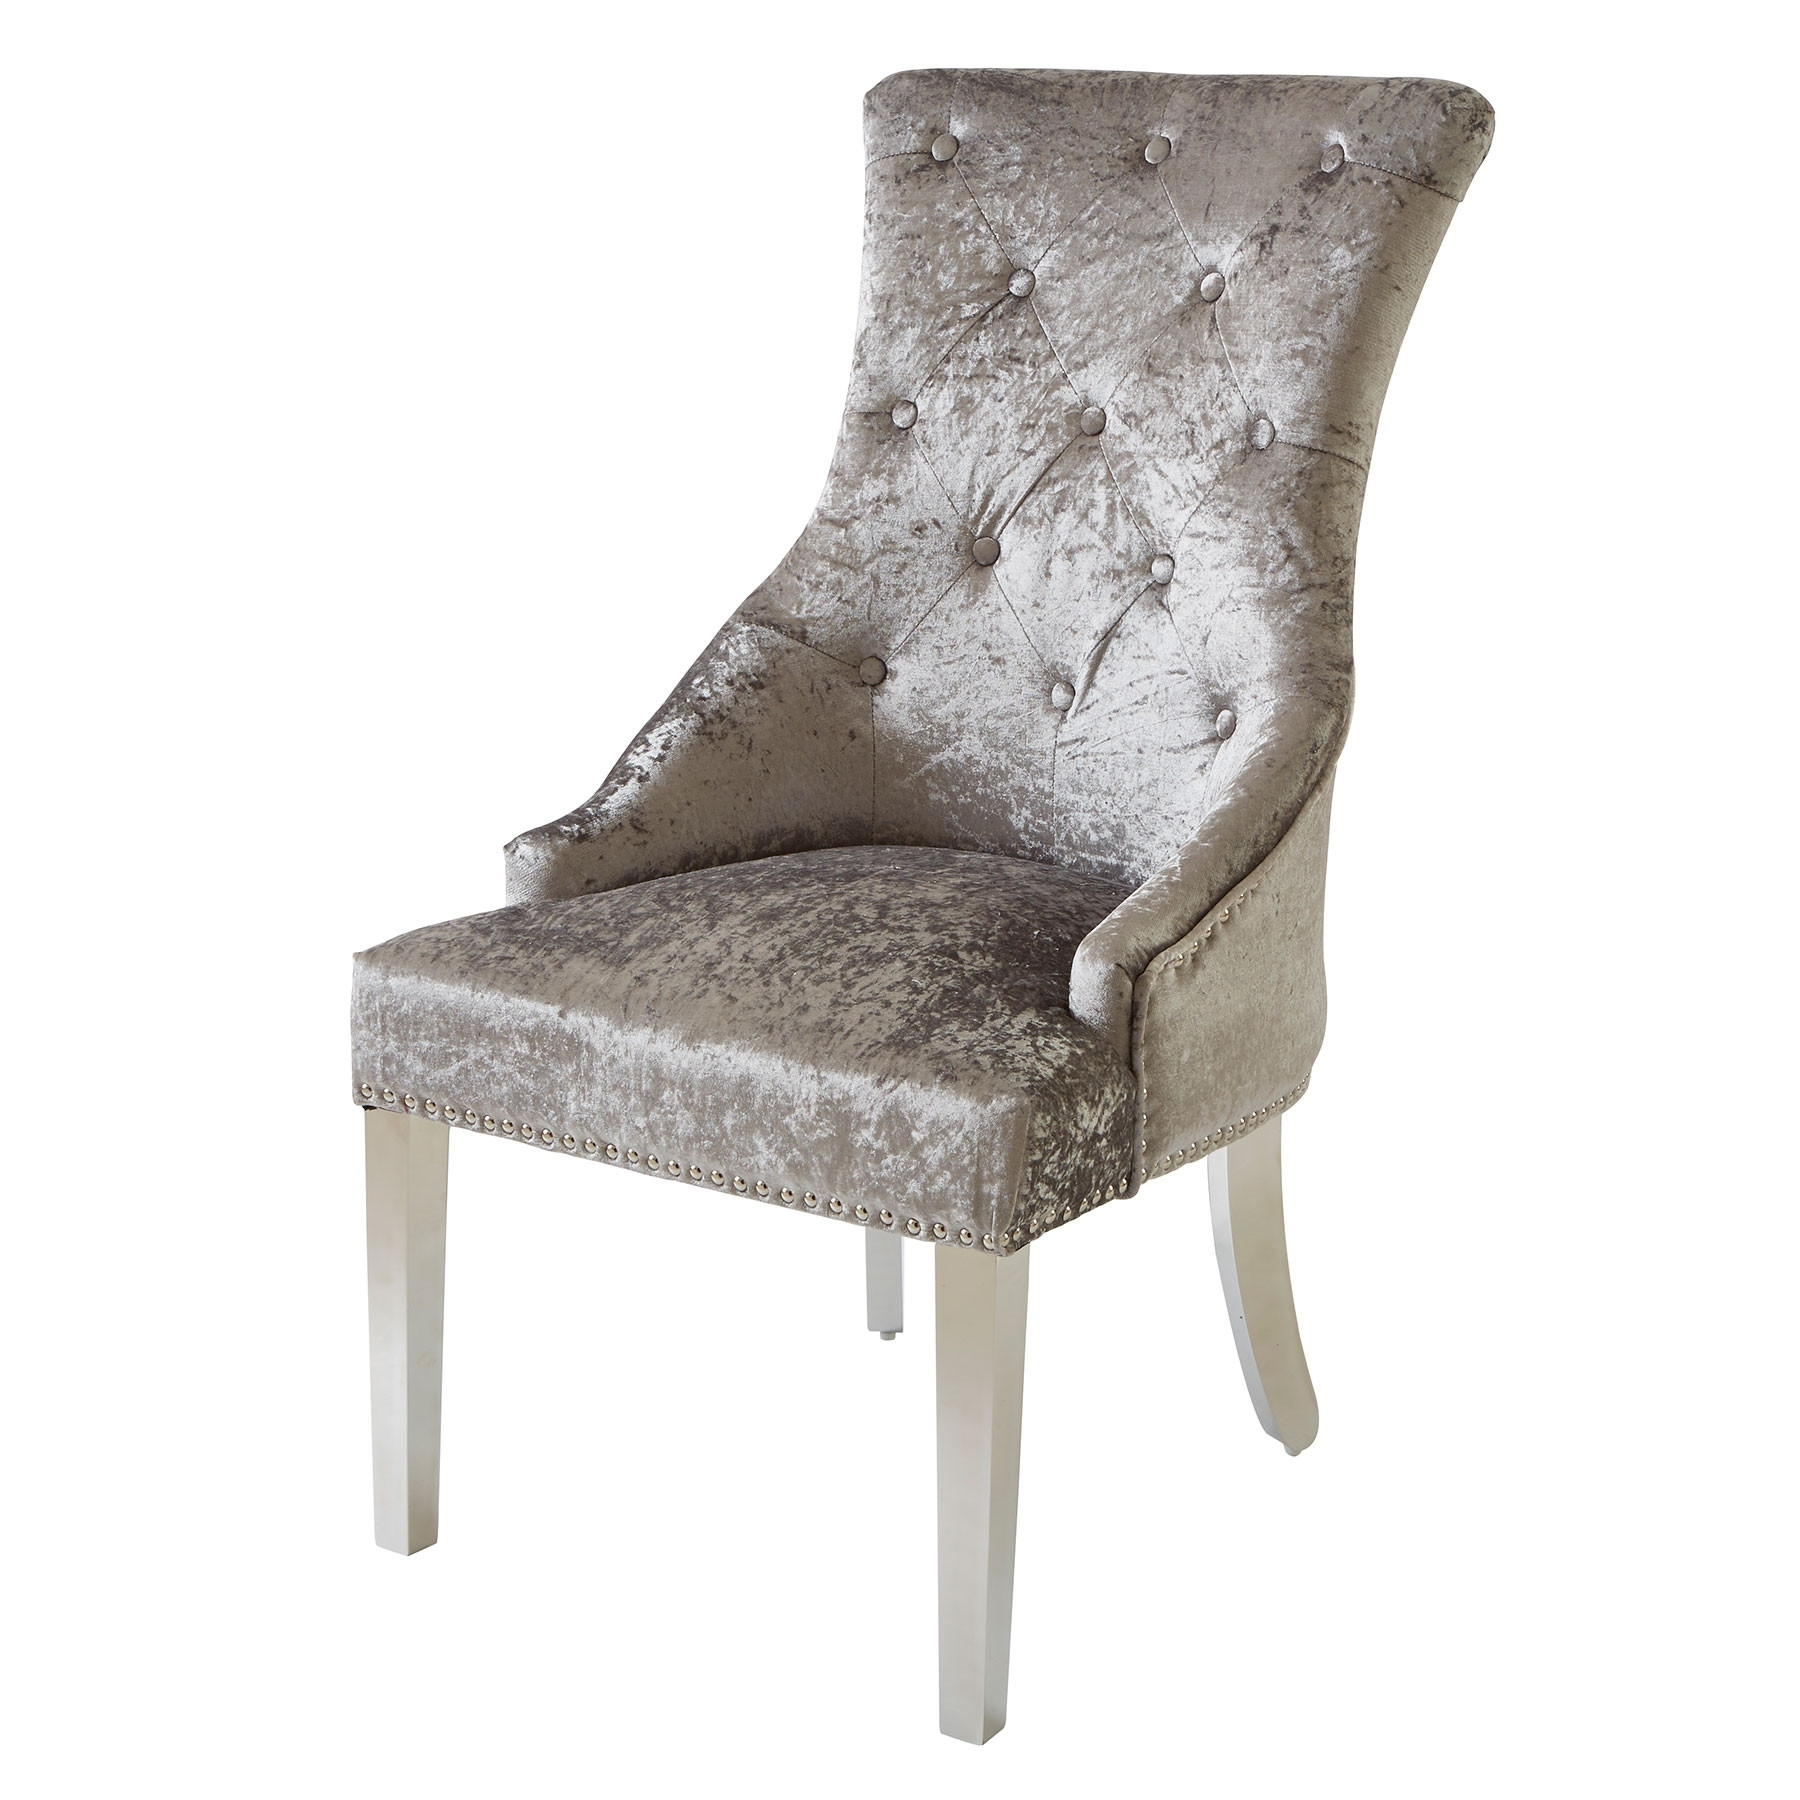 Fabric Covered Dining Chairs Within Newest Louis Silver Fabric Dining Chair With Knocker And Chrome Legs (View 5 of 25)